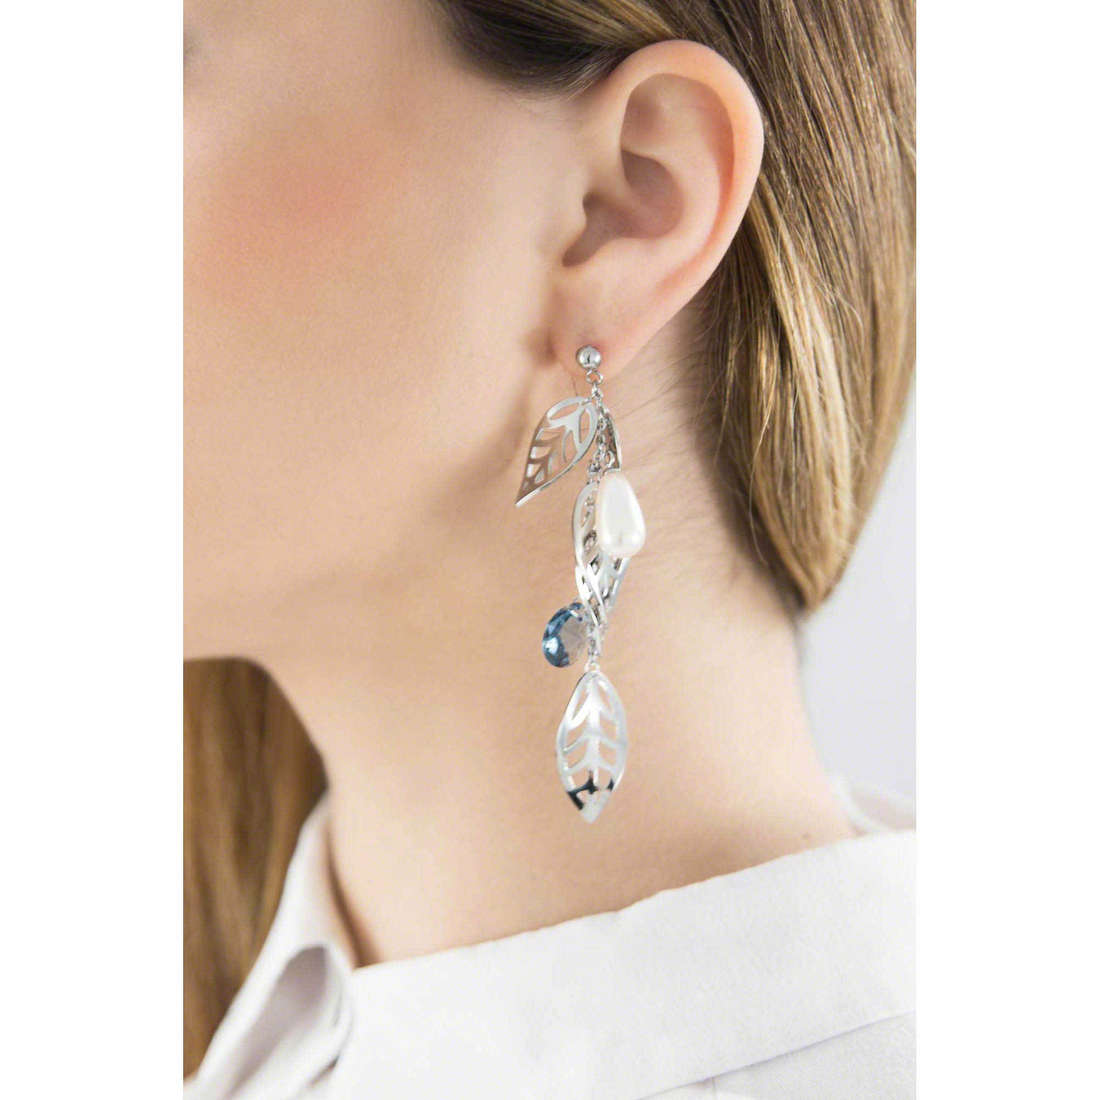 Brosway boucles d'oreille Leaves femme BLS21 indosso